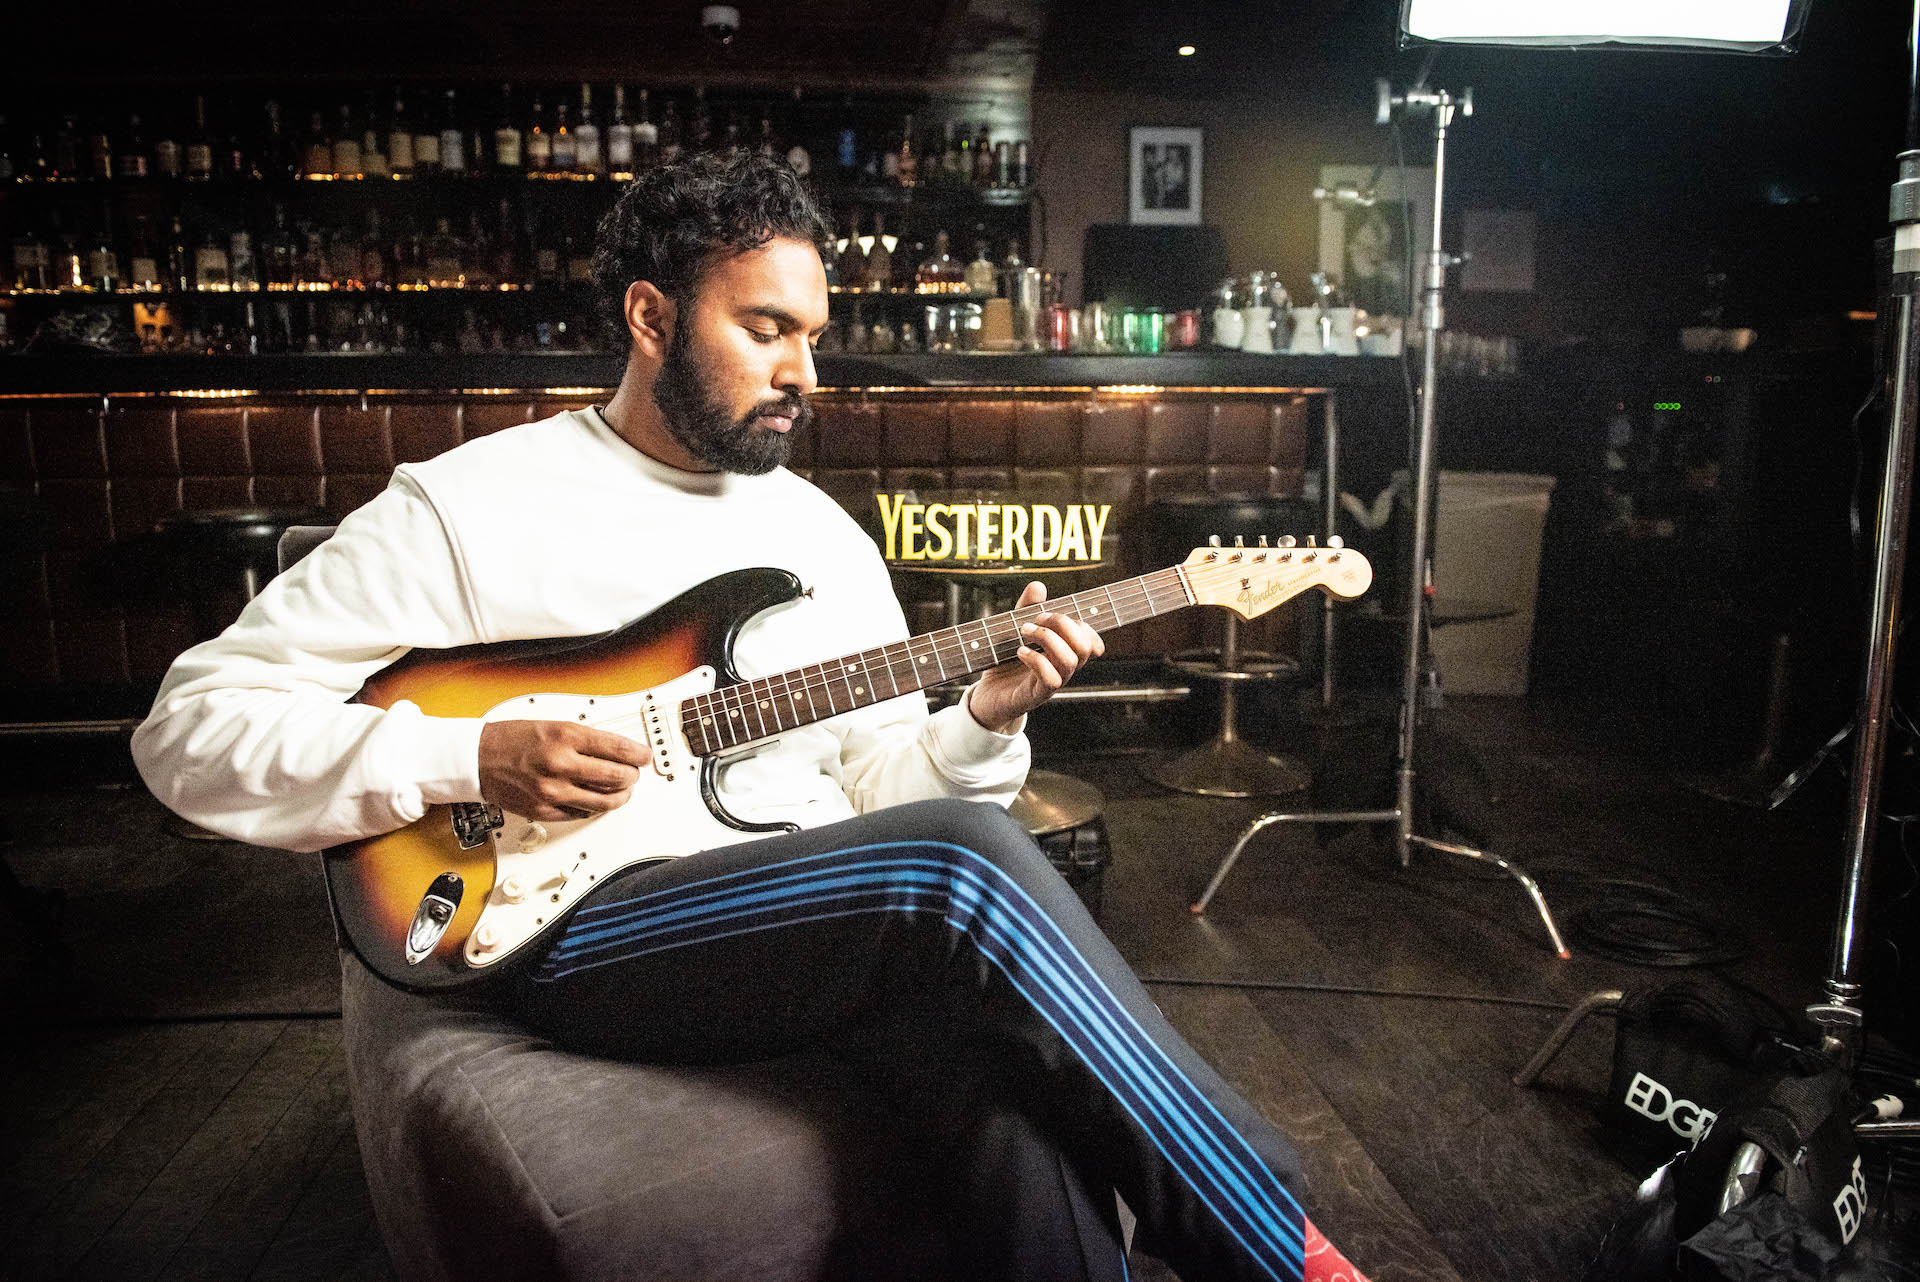 Himesh Patel, the lead in Yesterday, playing a 1965 Fender Stratocaster.